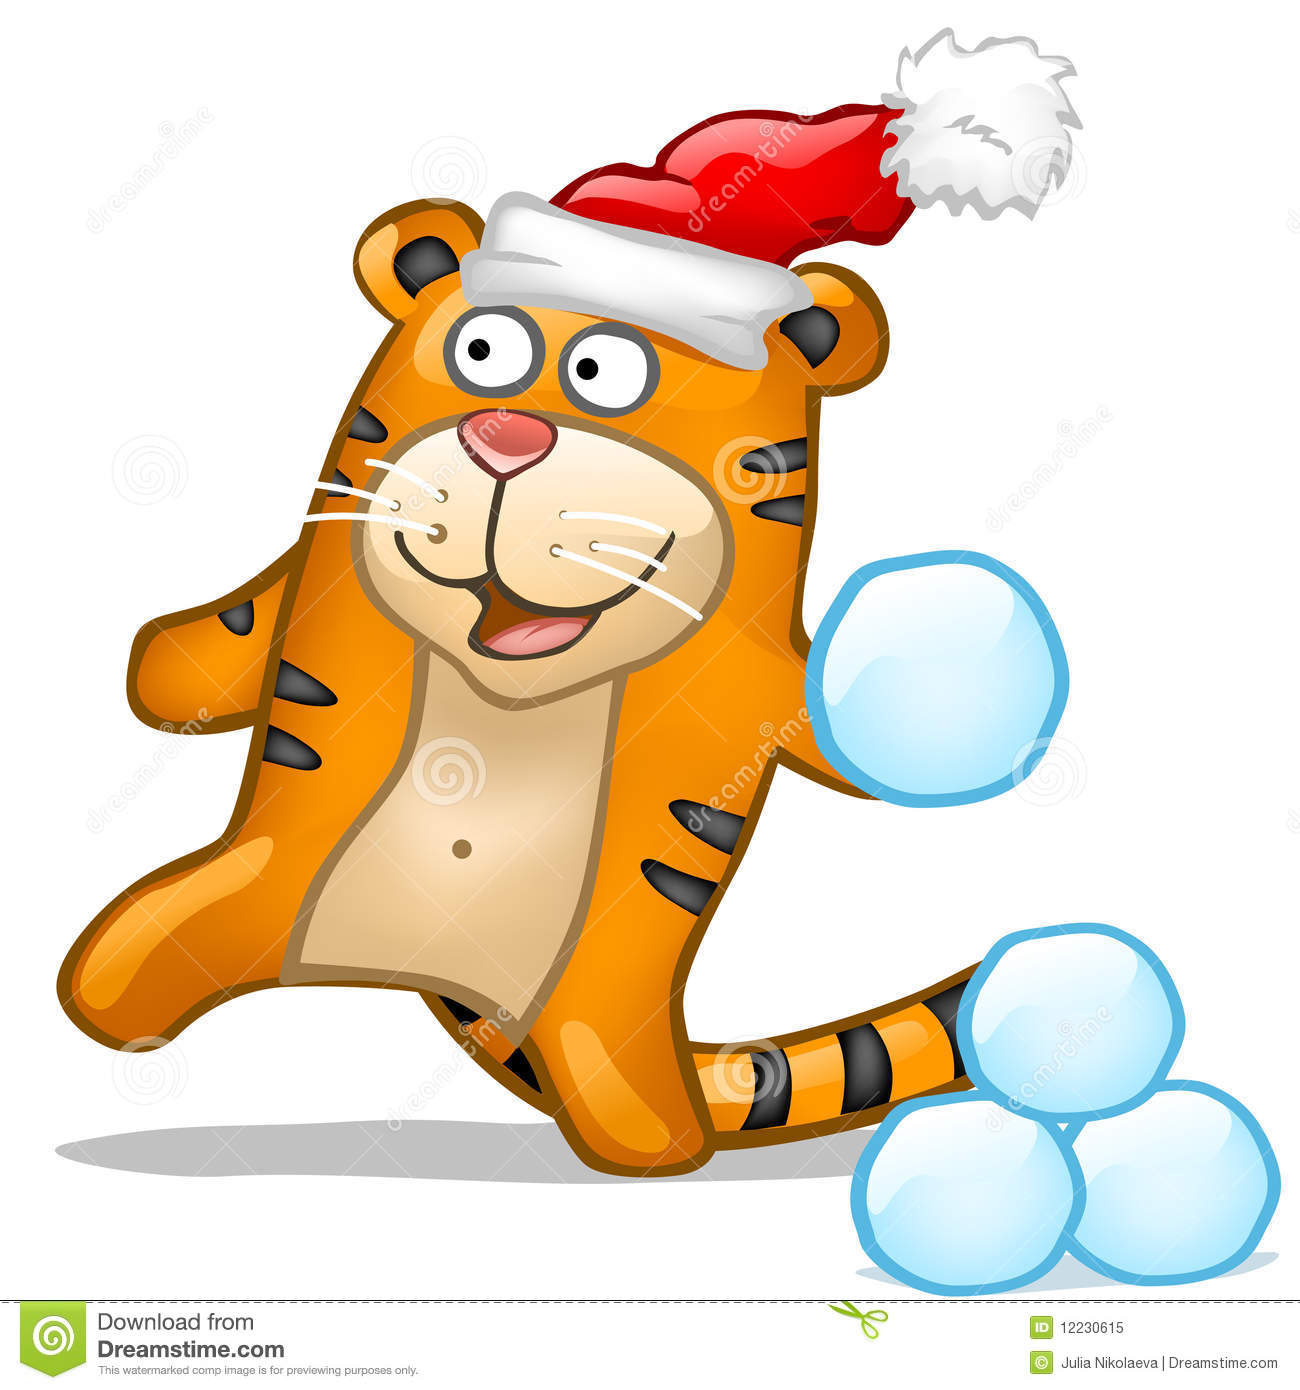 Snowball Fight Clipart Fun tiger with snowball in red